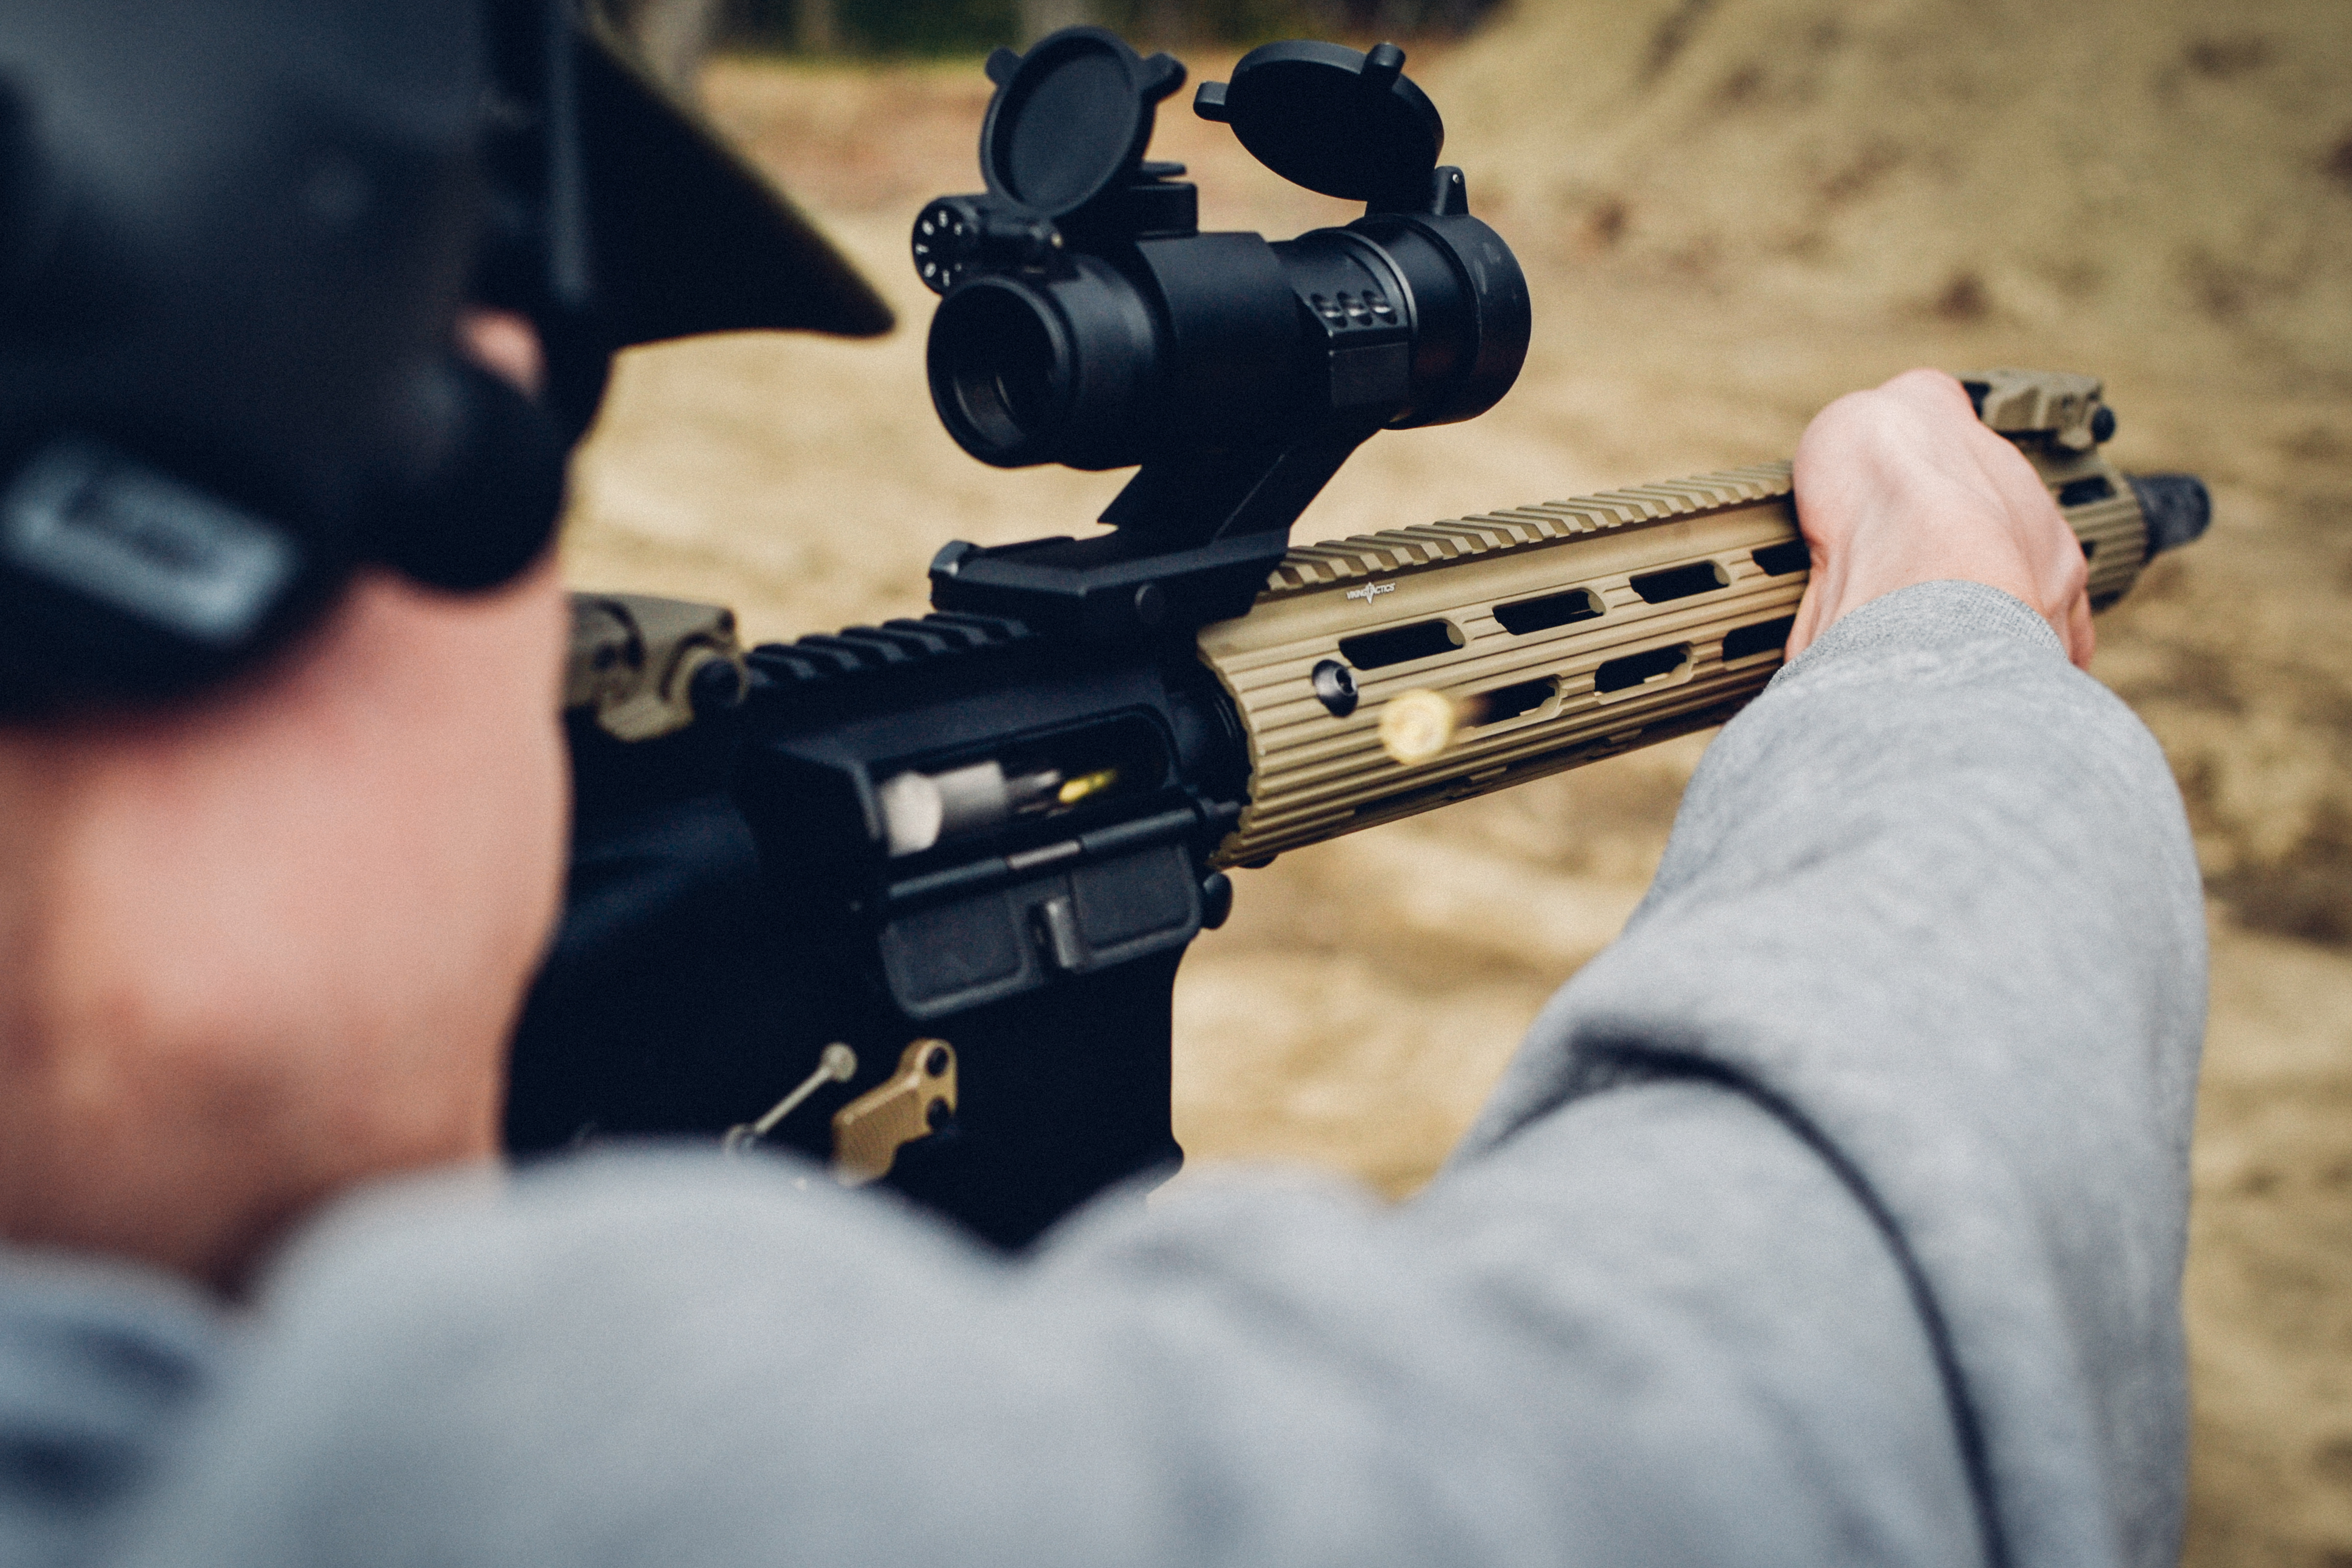 Spike's Tactical AR Build with Primary Arms 30mm Red Dot, Viking Tactics Alpha Rail 15″, SilencerCo Specwar Brake, Magpul MBUS Gen 2, FailZero Bolt Carrier Group, Odin Works XMR.